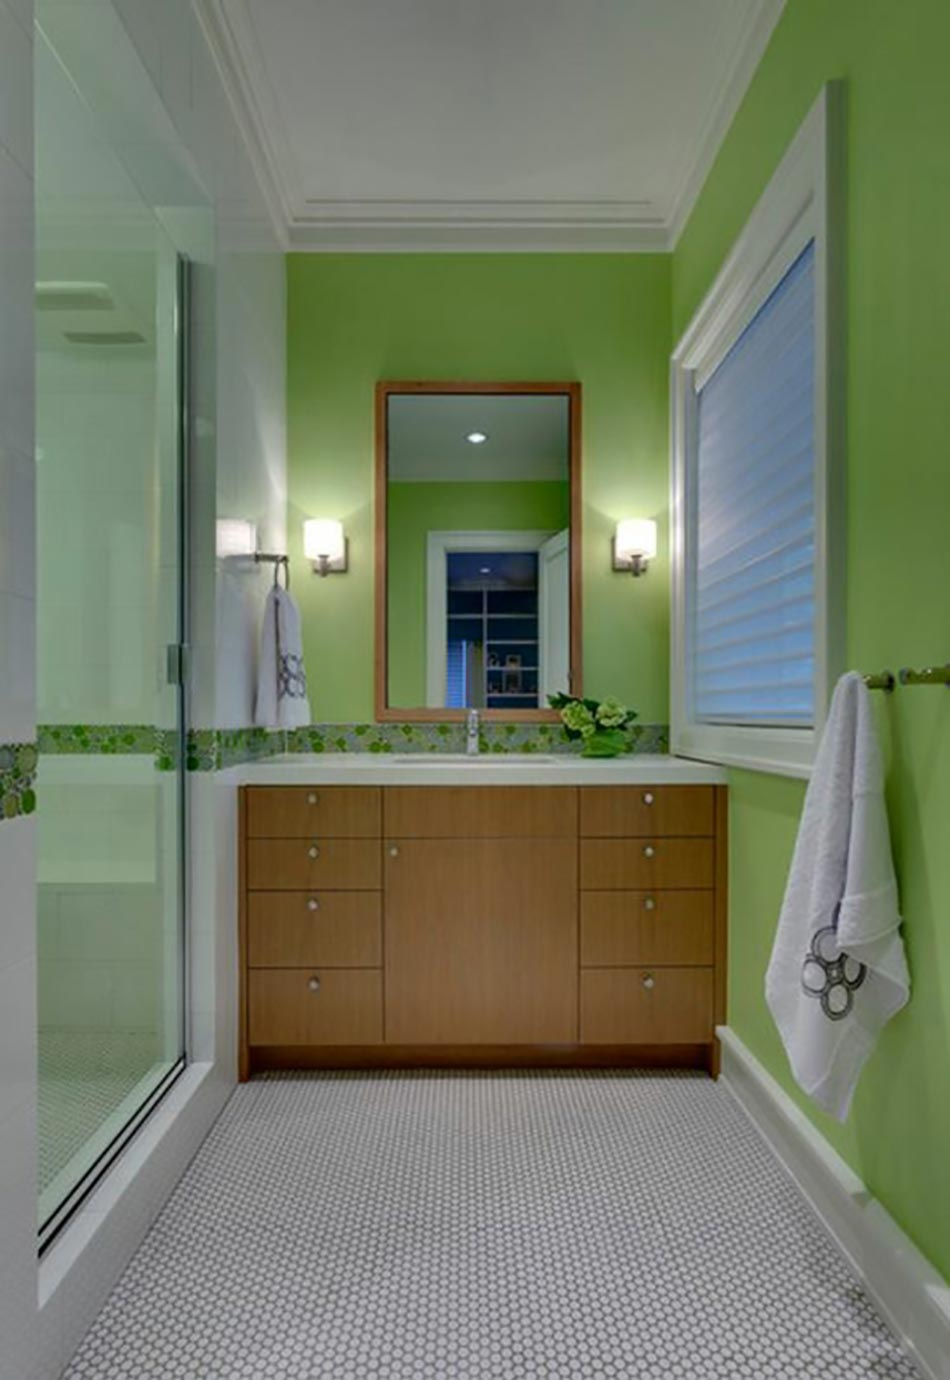 d co reposante et tendance en vert pour la salle de bain design feria. Black Bedroom Furniture Sets. Home Design Ideas